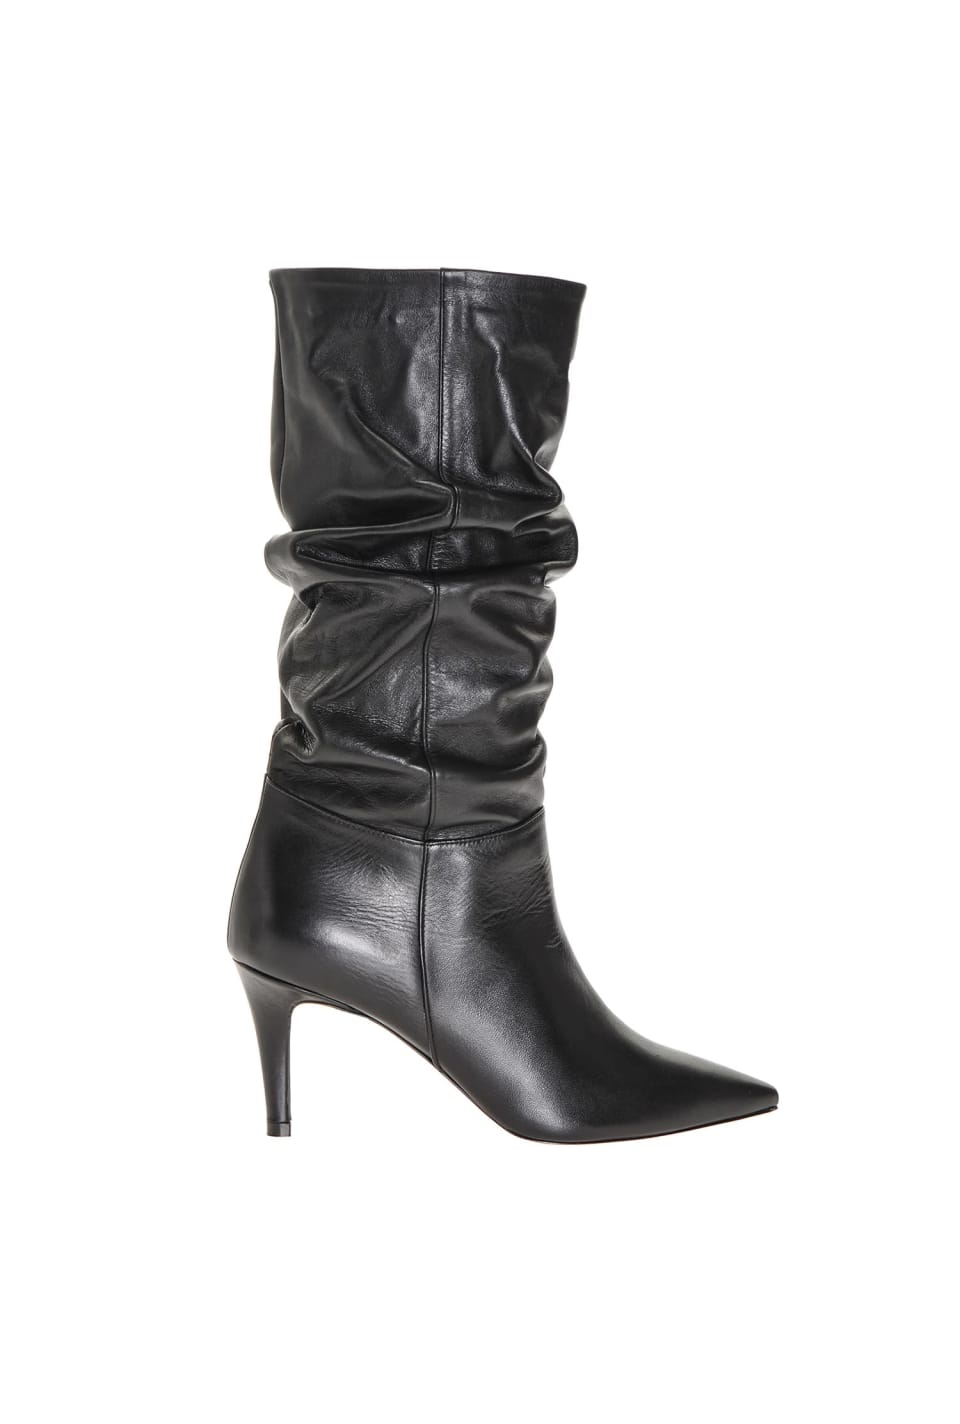 Nappa finish leather boots